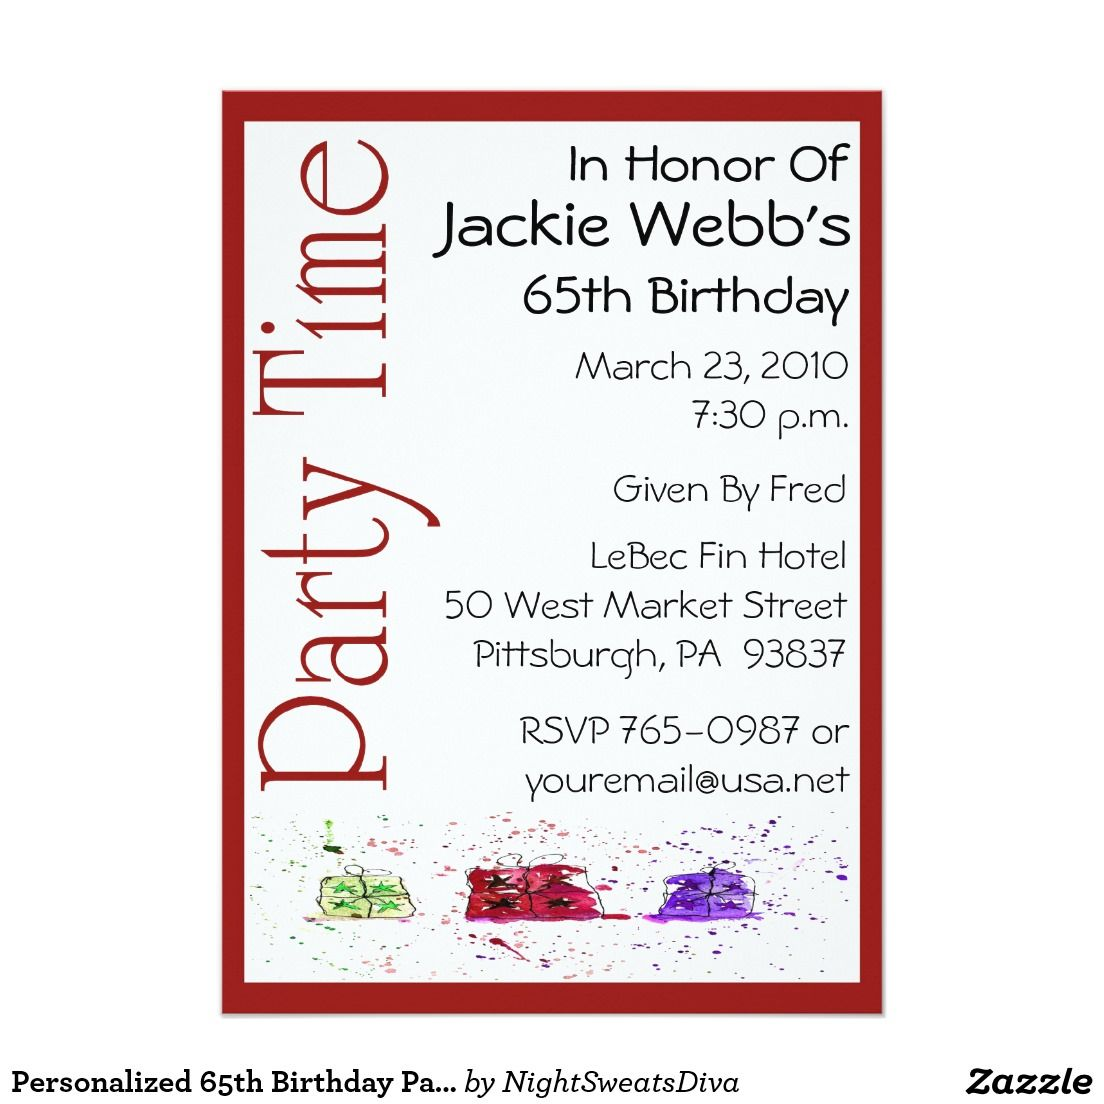 Personalized 65th Birthday Party Invitation | 65th Birthday Invites ...